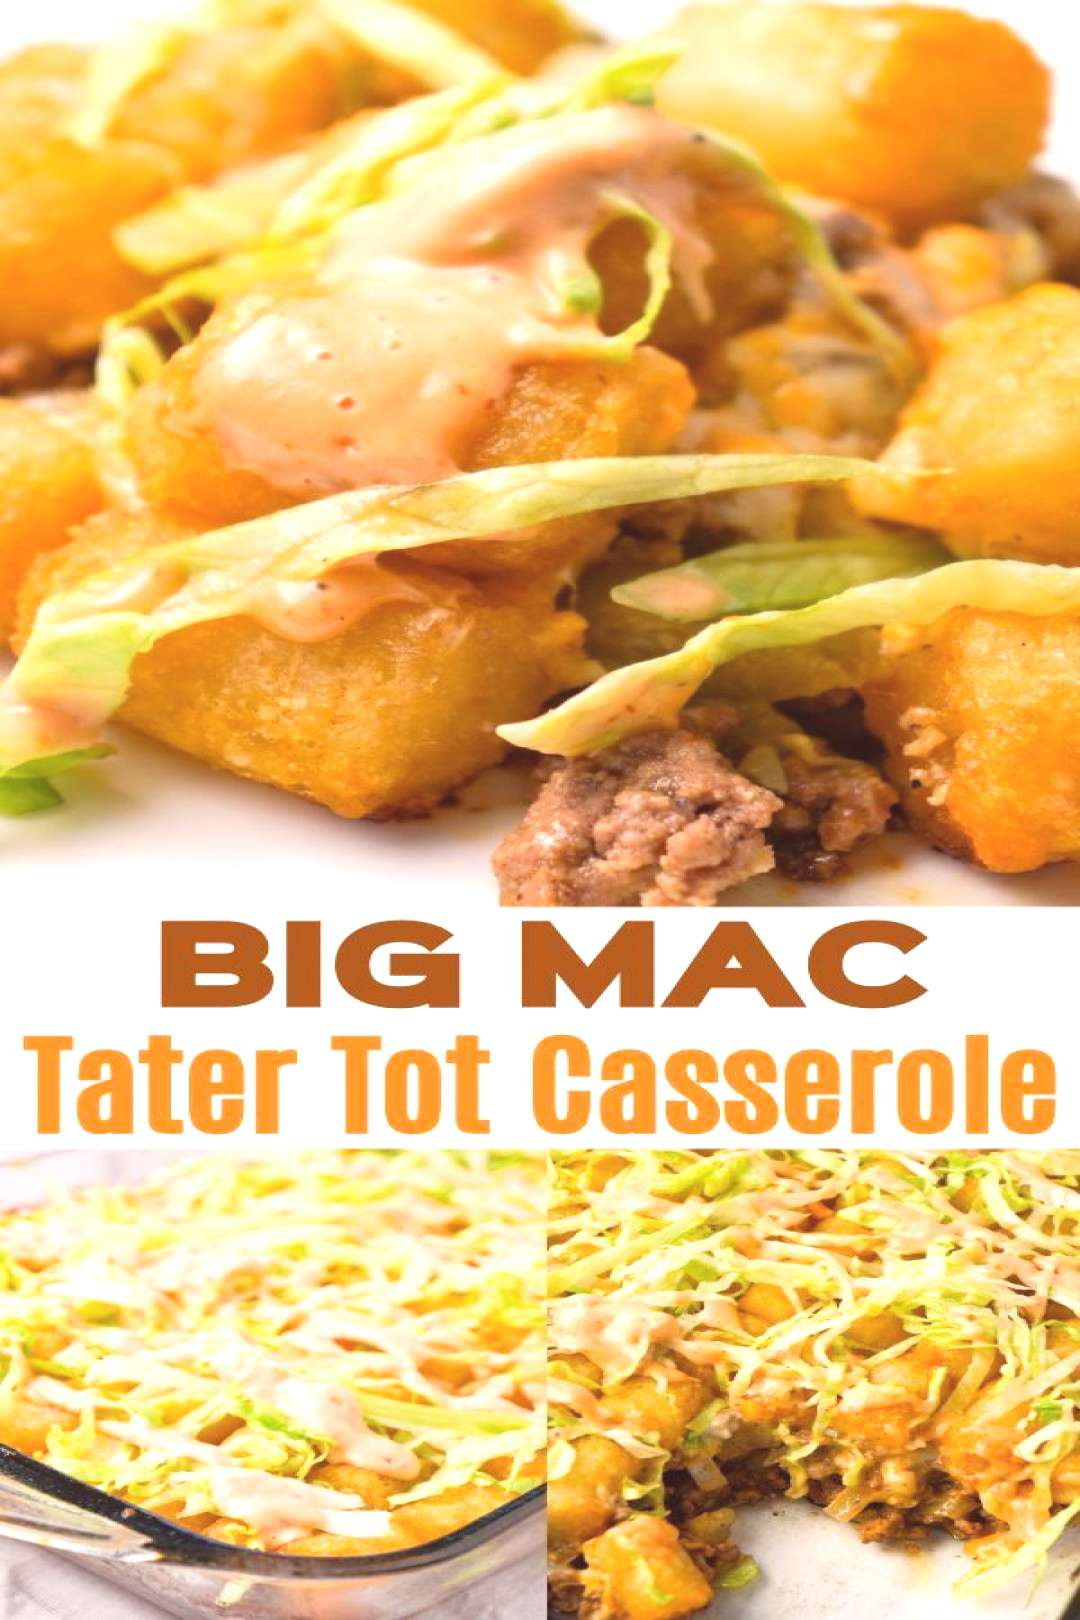 Big Mac Tater Tot Casserole is an easy dinner recipe that starts out with a base of ground beef, on